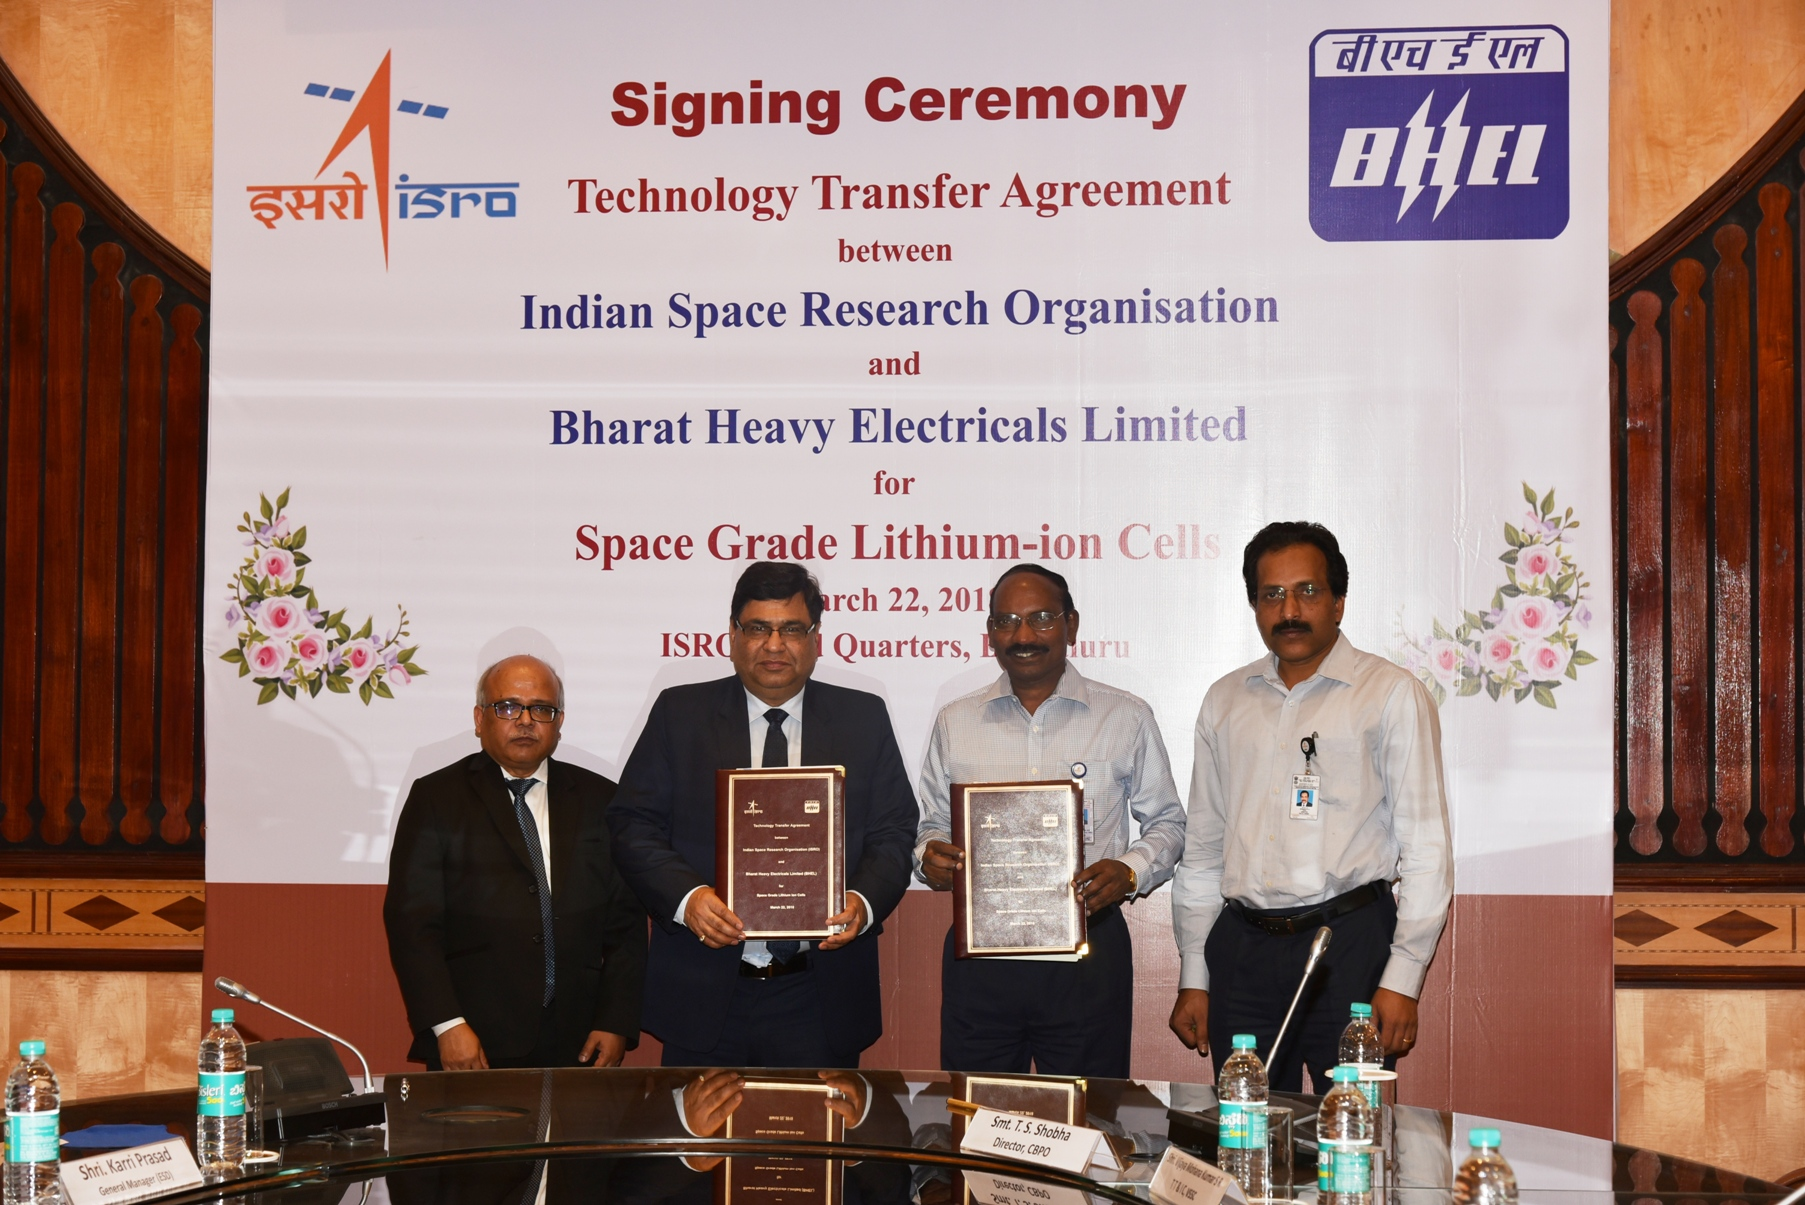 TTA Signing ceremony Mr Subrata Biswas, Director, BHEL (E,R&D),Mr Atul Sobti, CMD, BHEL and Dr K Sivan, Chairman, ISRO and Mr S Somanath, Director Vikram Sarabhai Space Centre